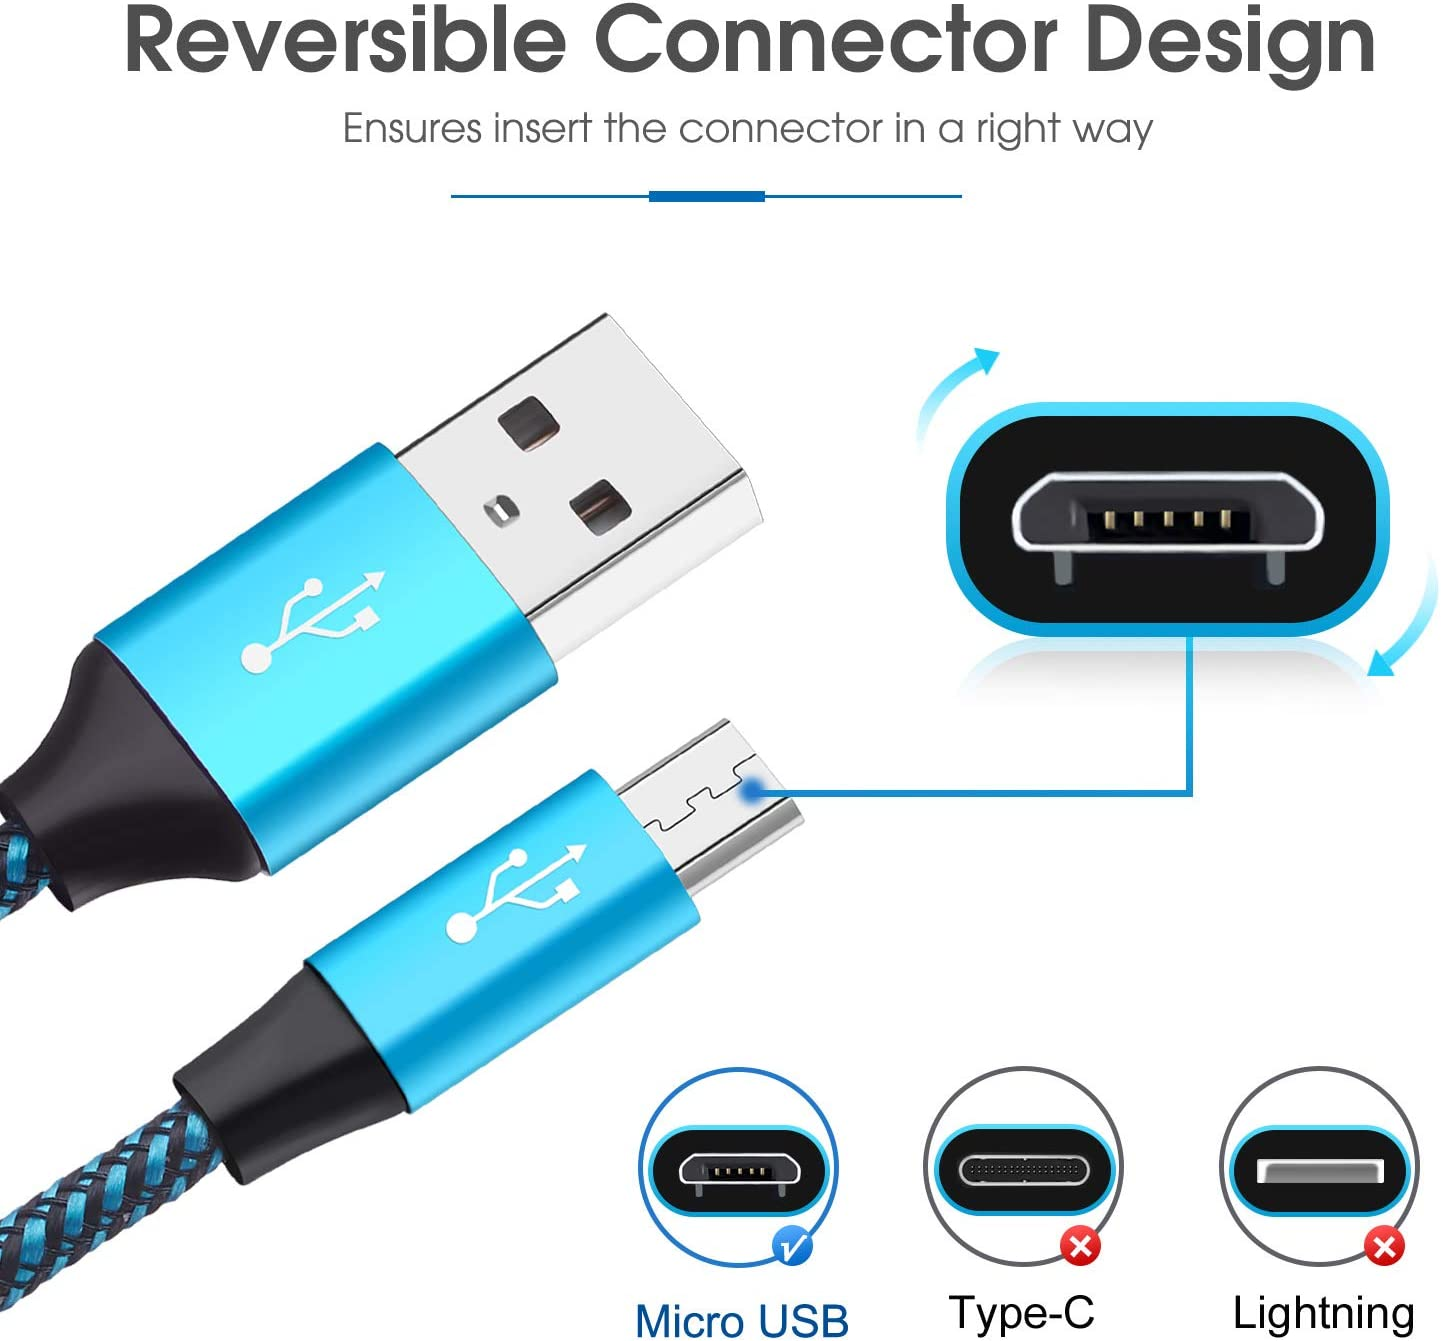 OTG Micro-USB to USB 2.0 Right Angle Adapter works for LG Stylo 2 is High Speed Data-Transfer Cable for connecting any compatible USB Accessory//Device//Drive//Flash// and truly On-The-Go! Black